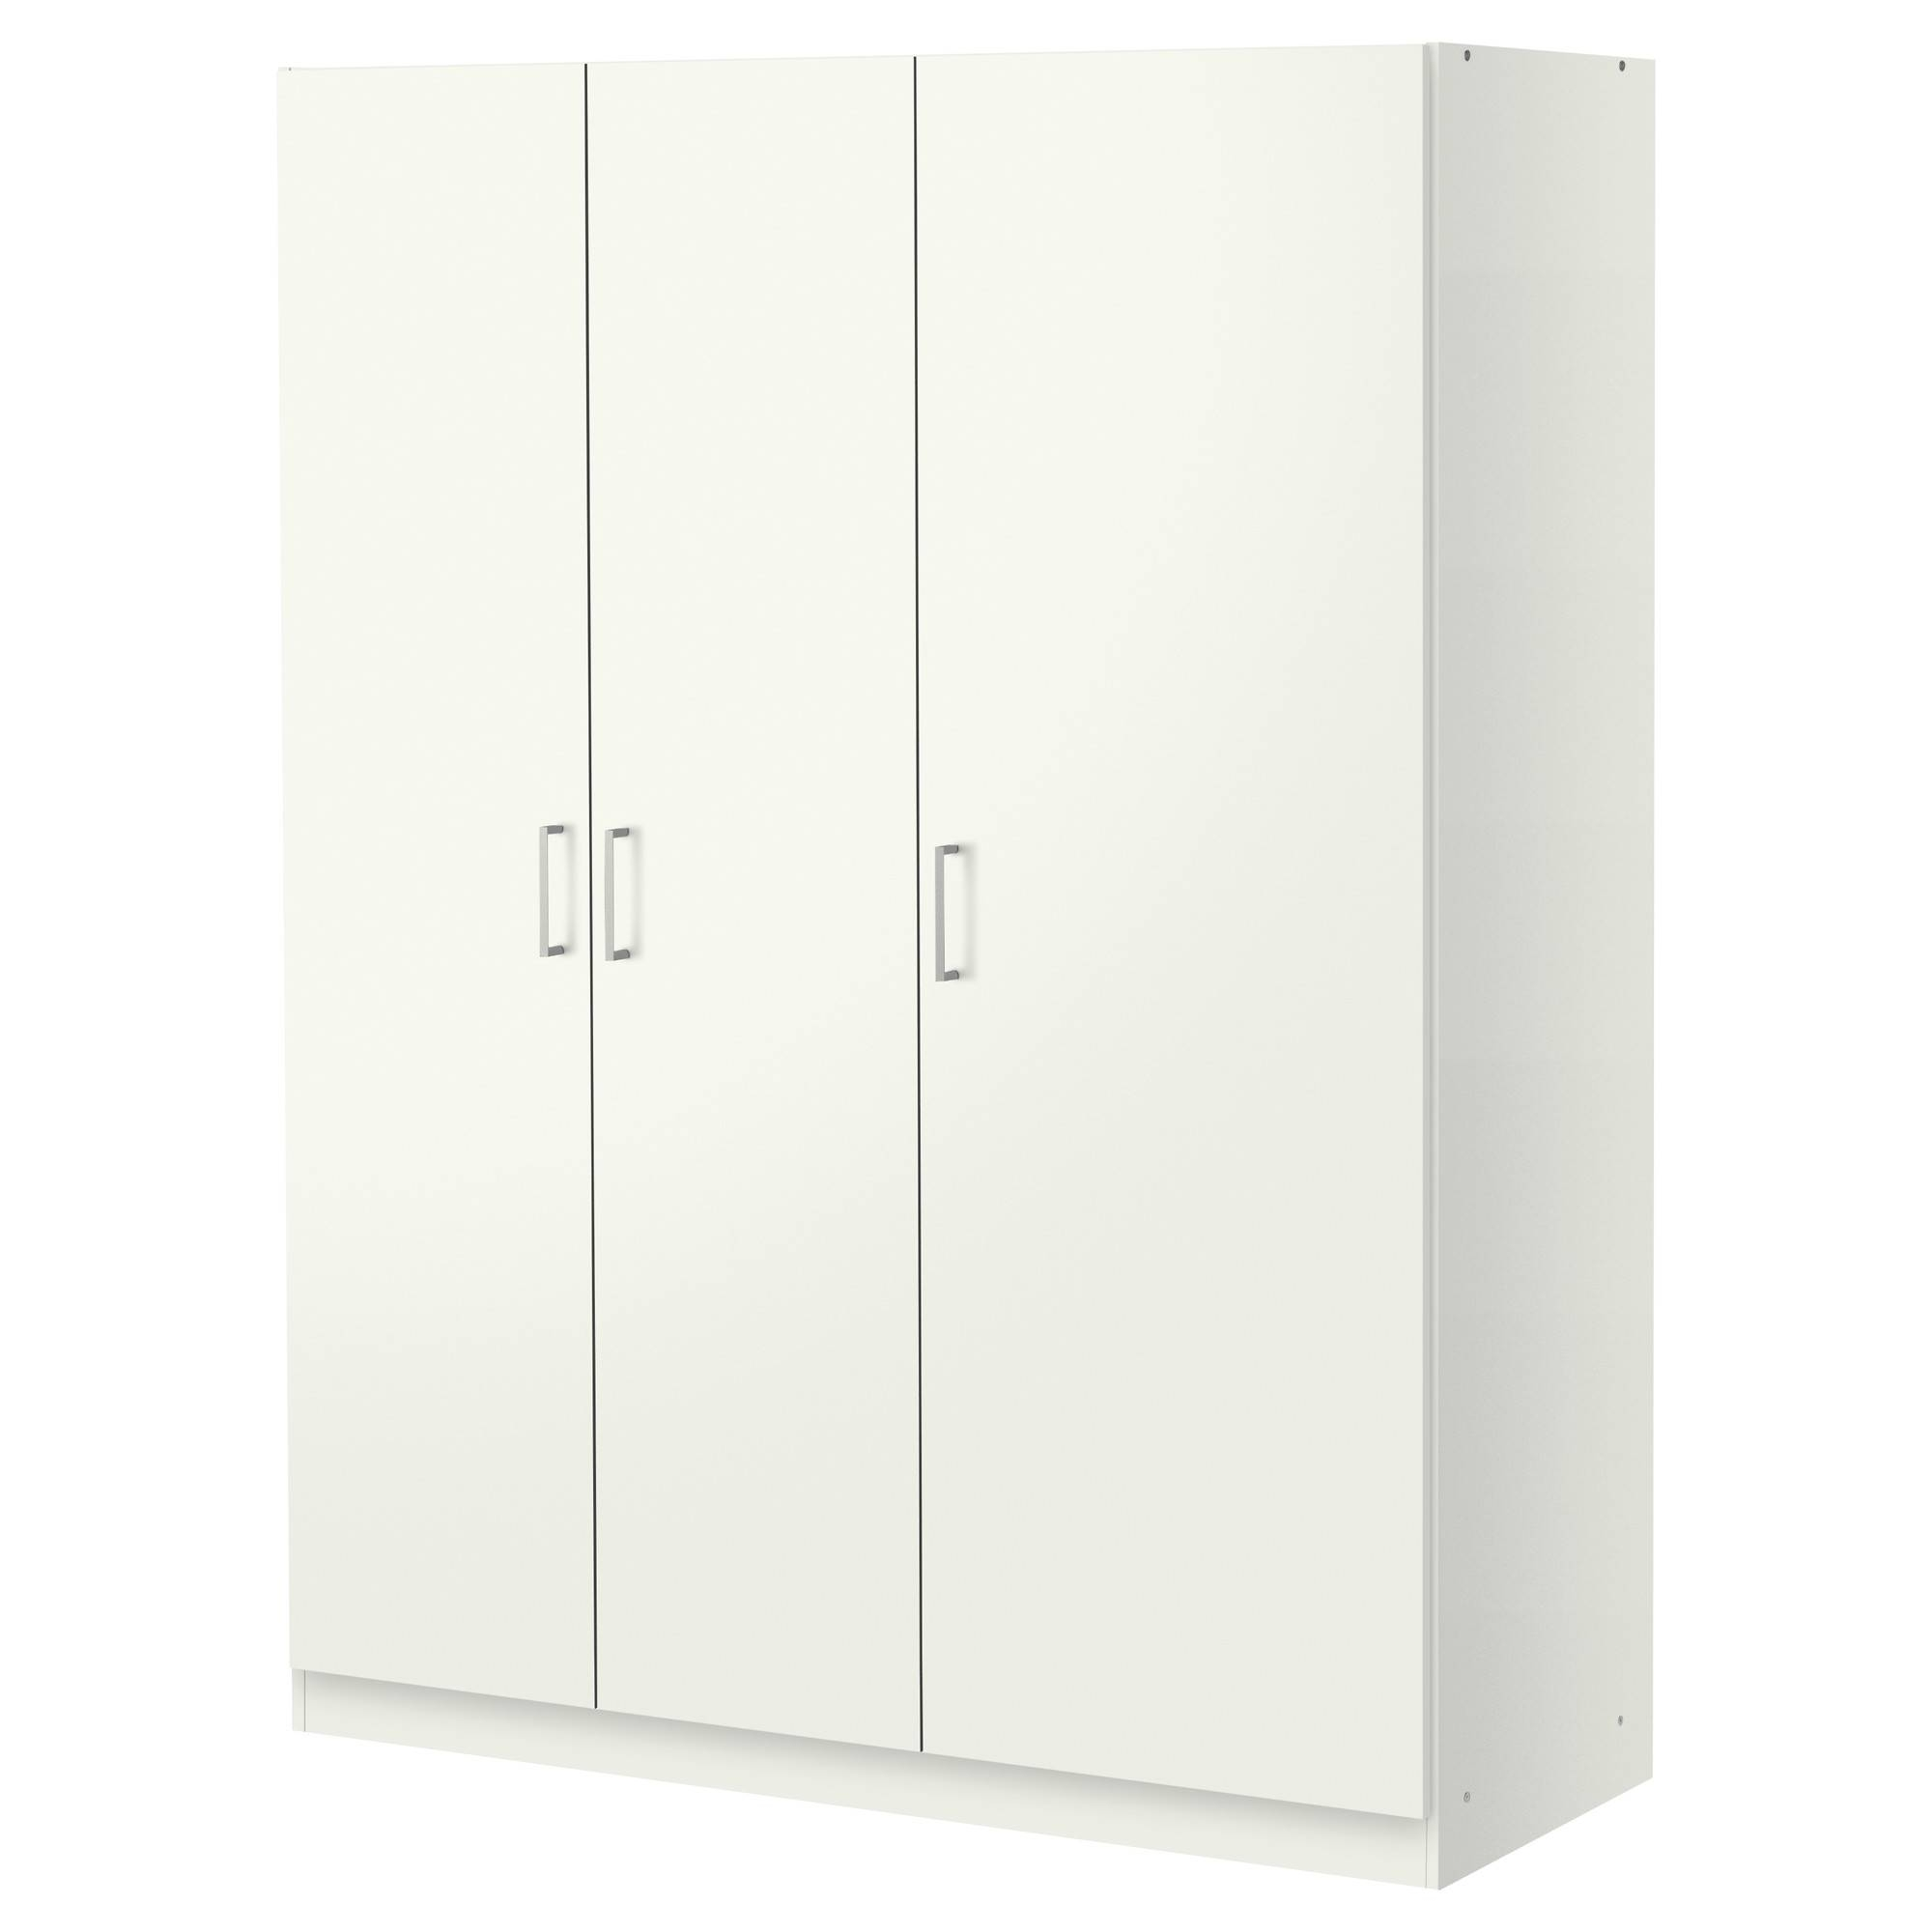 Free Standing Wardrobes | Ikea within Dark Wood Wardrobes Ikea (Image 12 of 30)